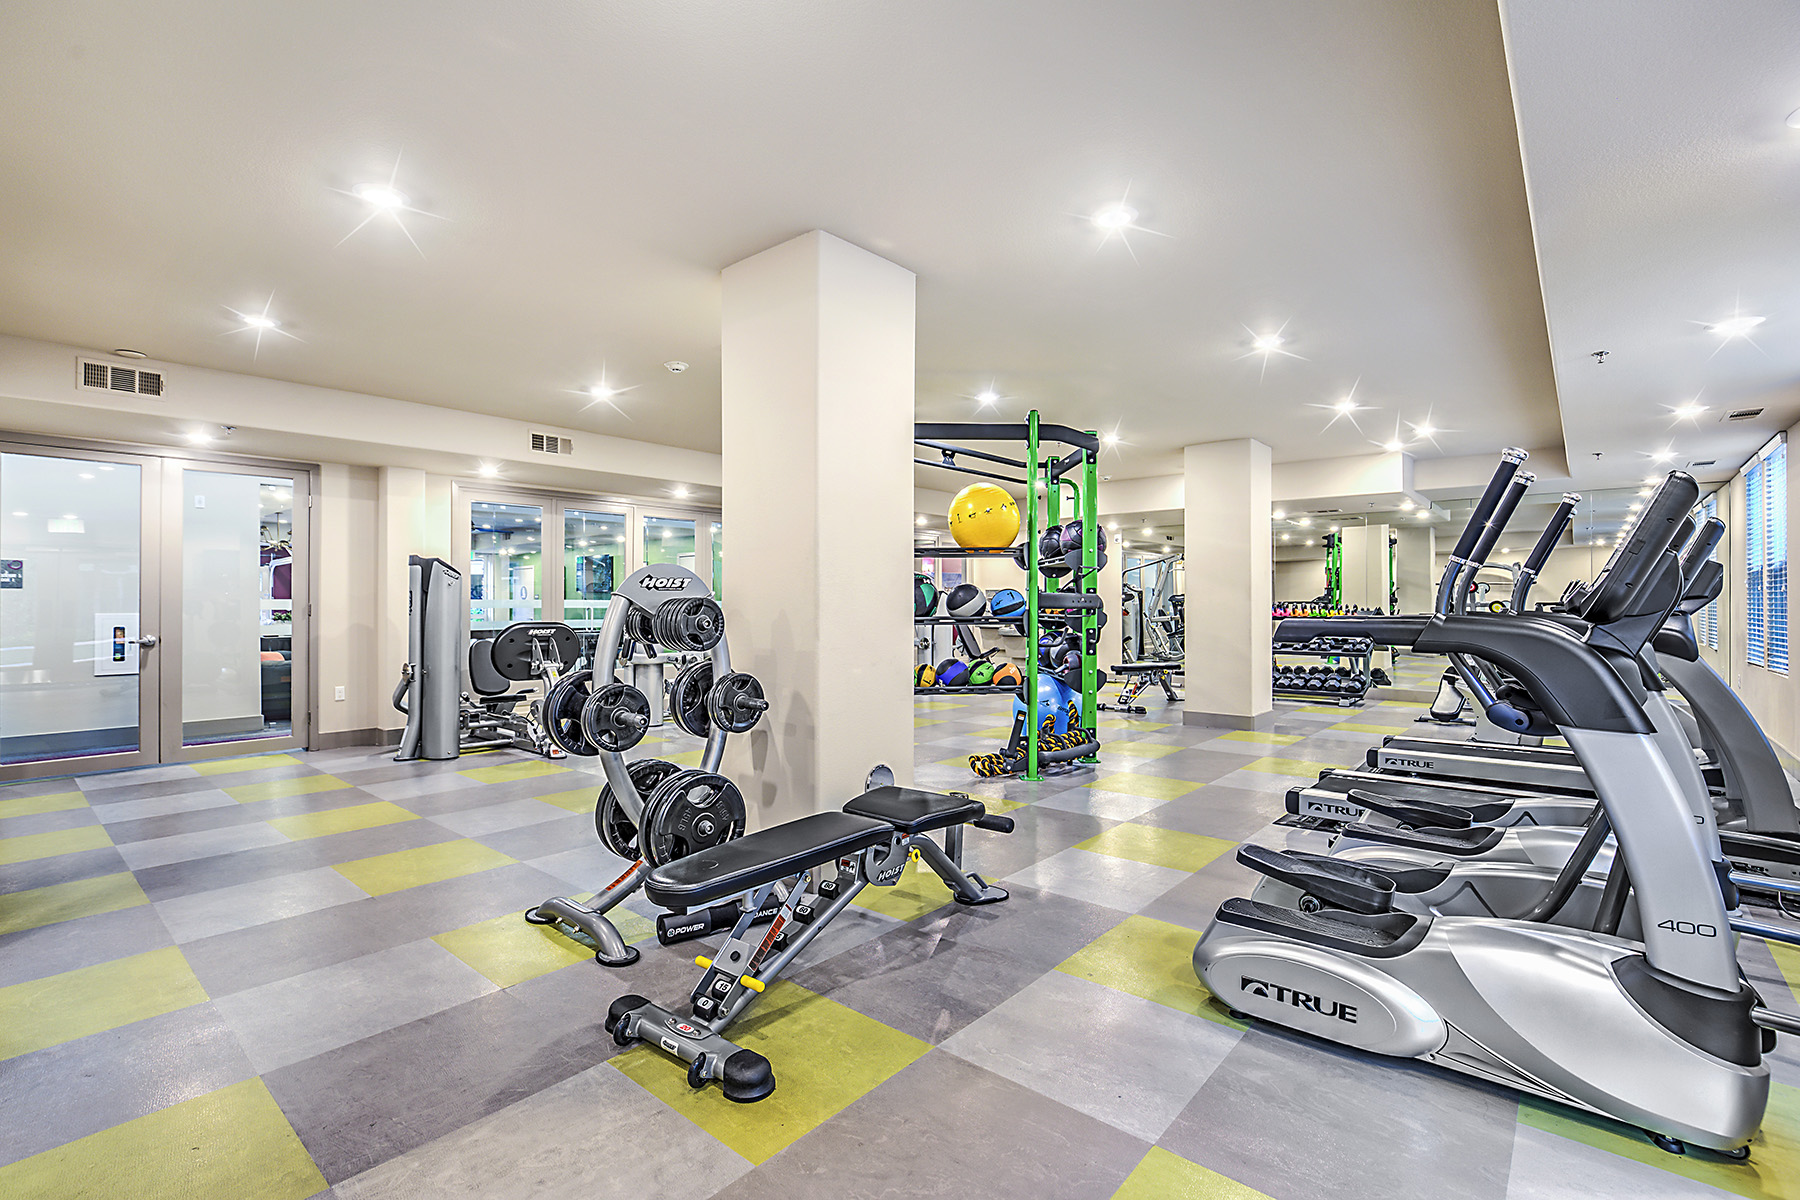 Spacious fitness center with exercise balls, dumbbells and medicine balls, weight machines, and cardio machines including treadmills and ellipticals.